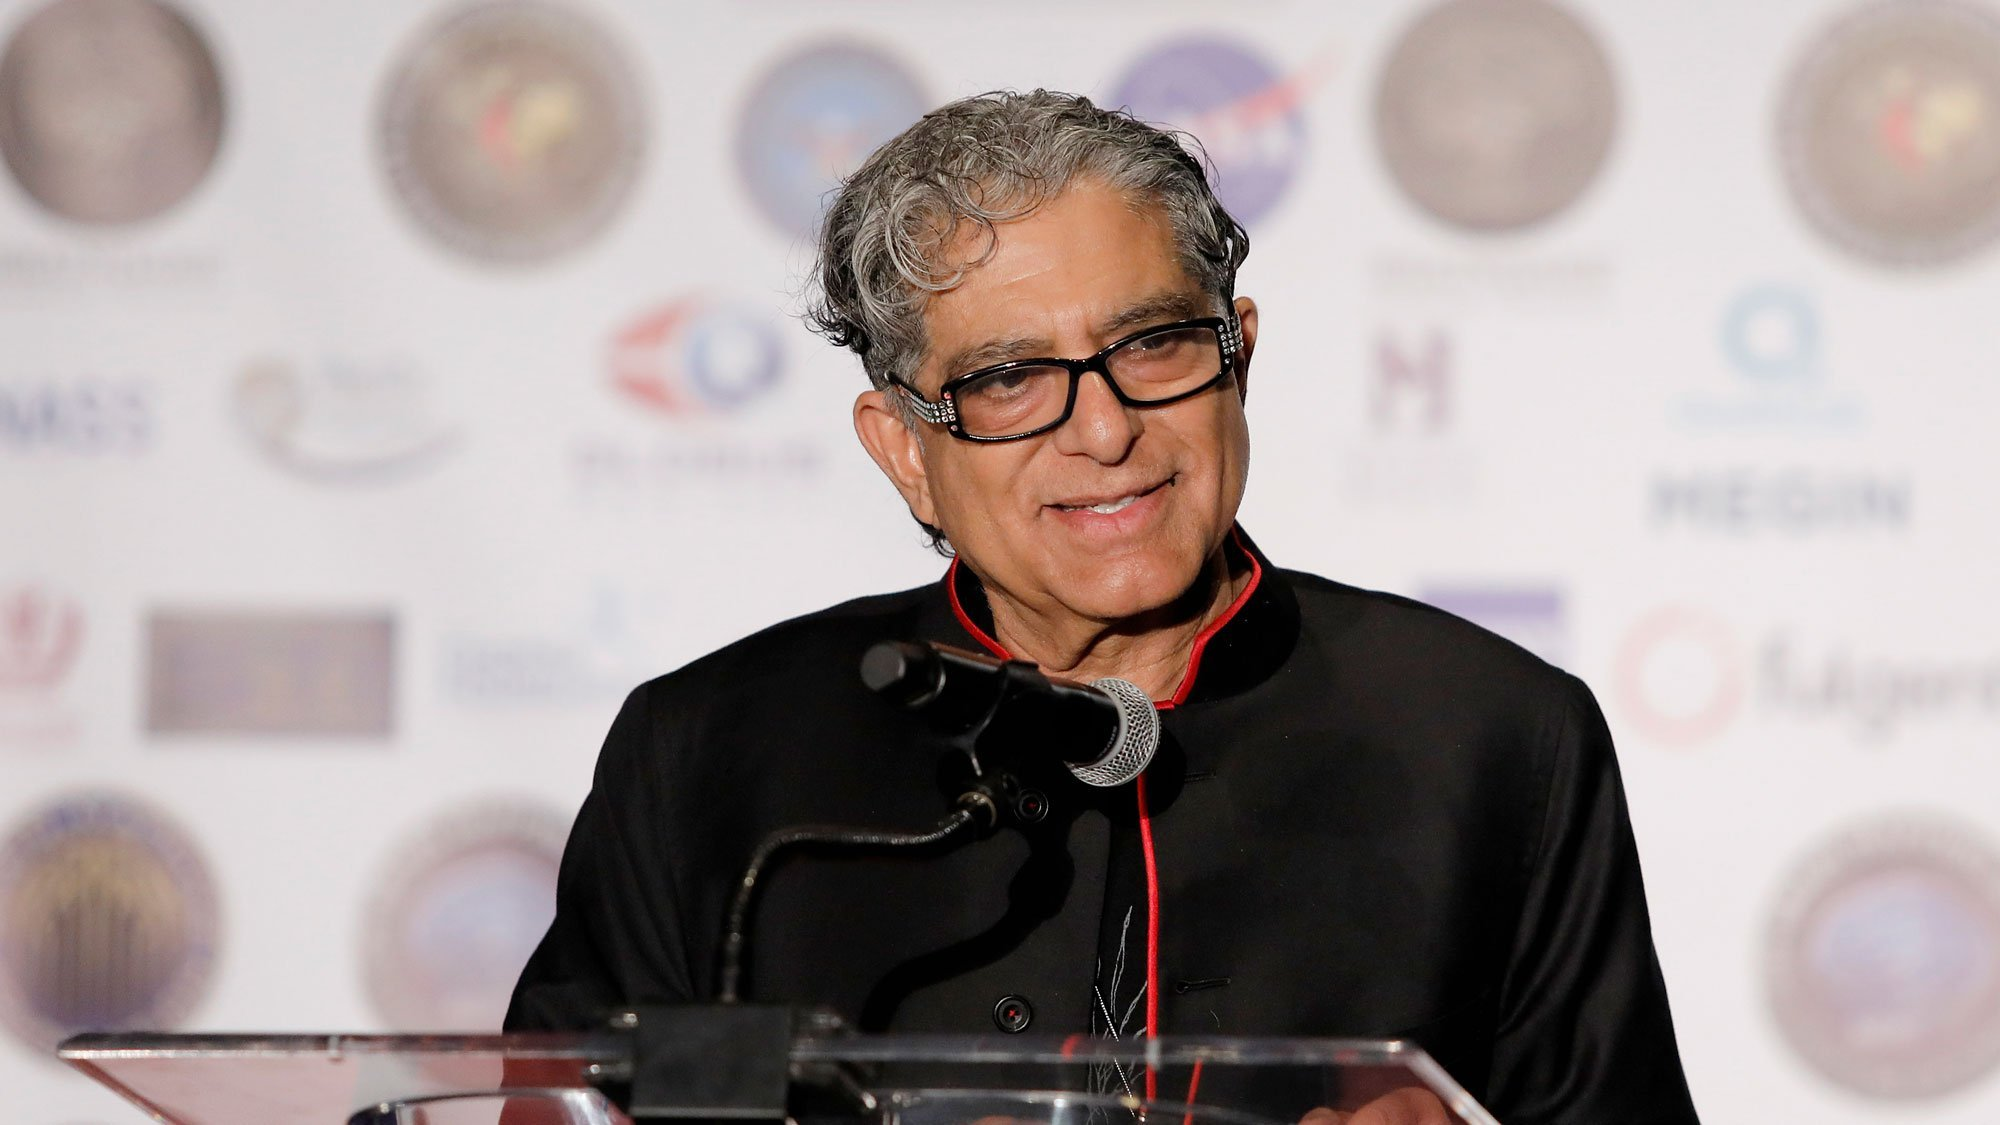 Deepak Chopra's meditation stream crashes as people tune in to the wellness guru